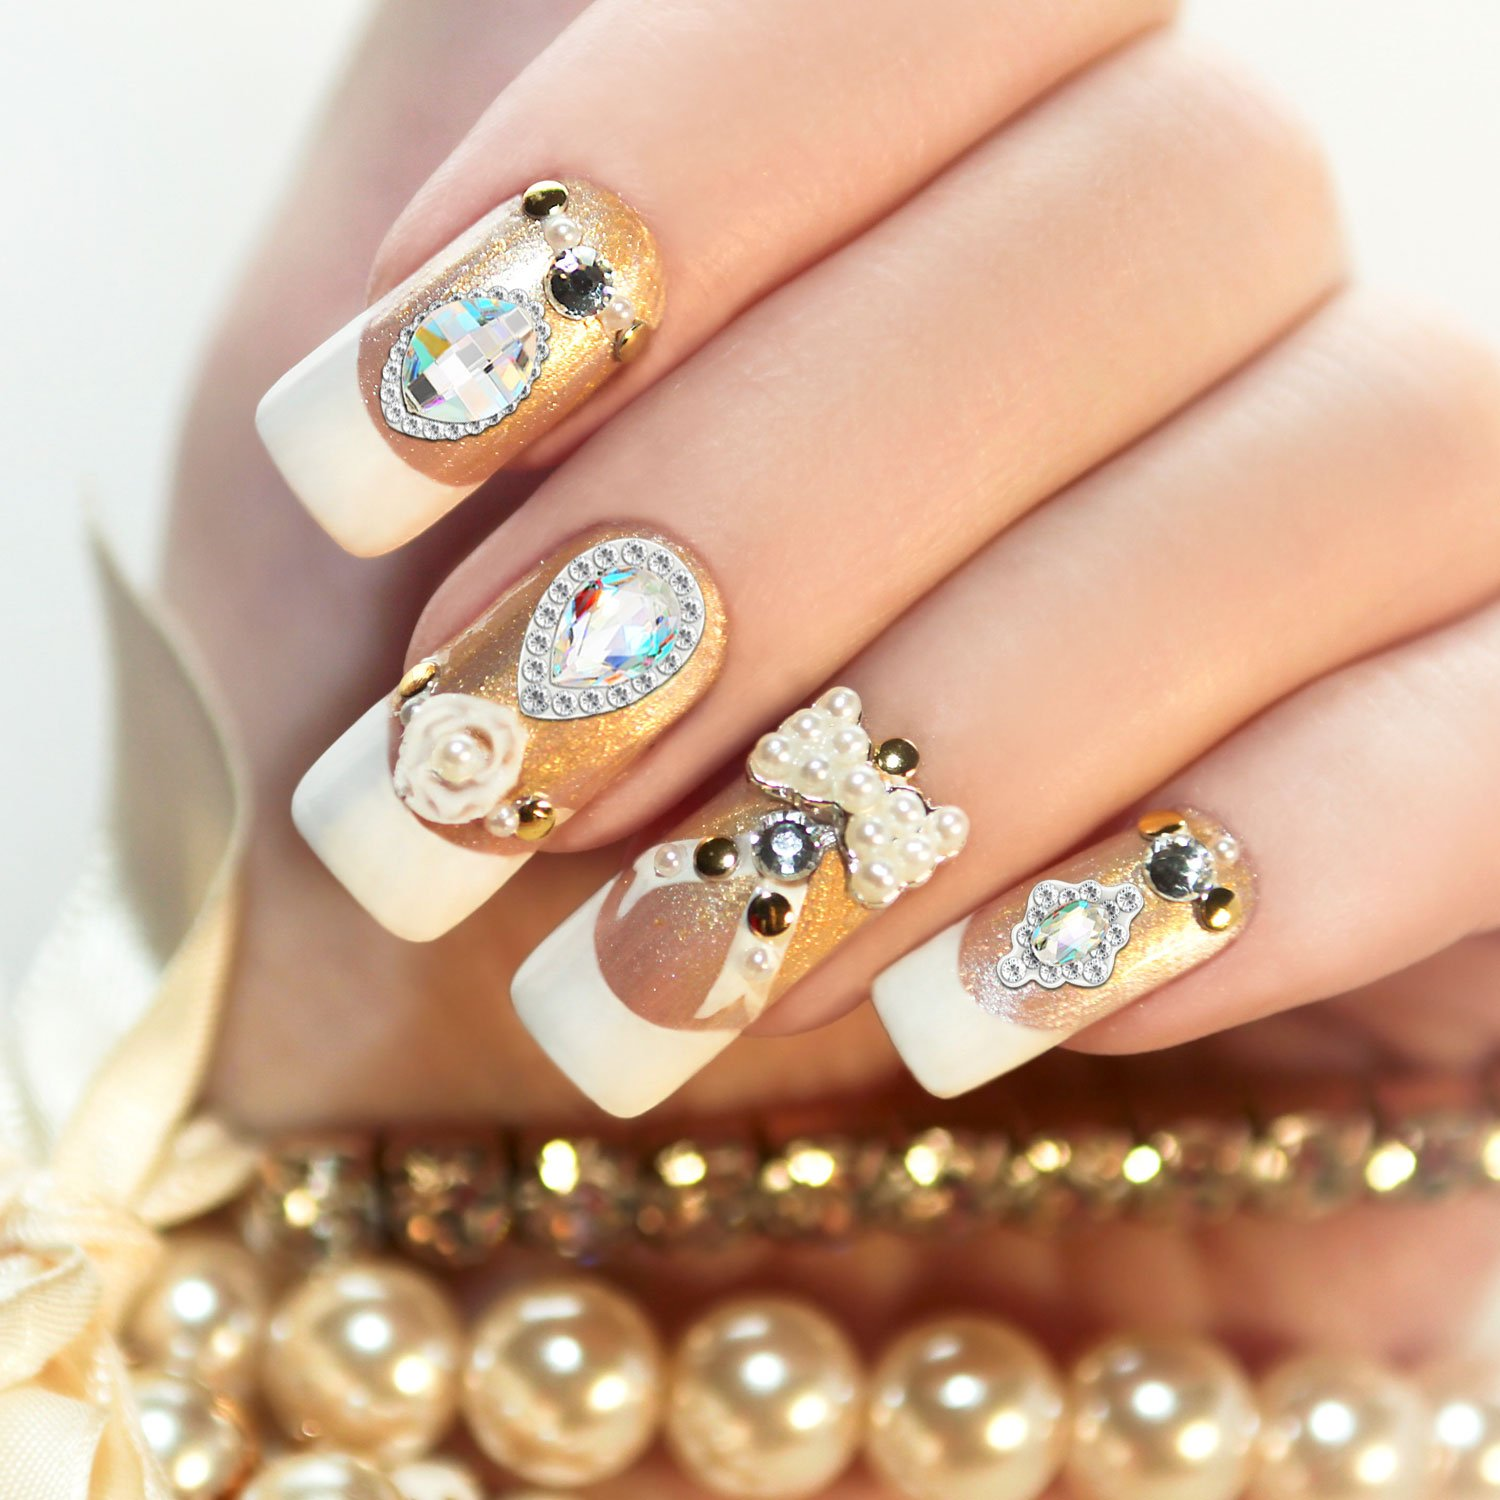 Bememo 36 Pieces 3D Nail Art Rhinestones Crystal Glass Metal Gem Stones Manicure Studs Nail Tips for Nail Art DIY (Style 1) by Bememo (Image #6)